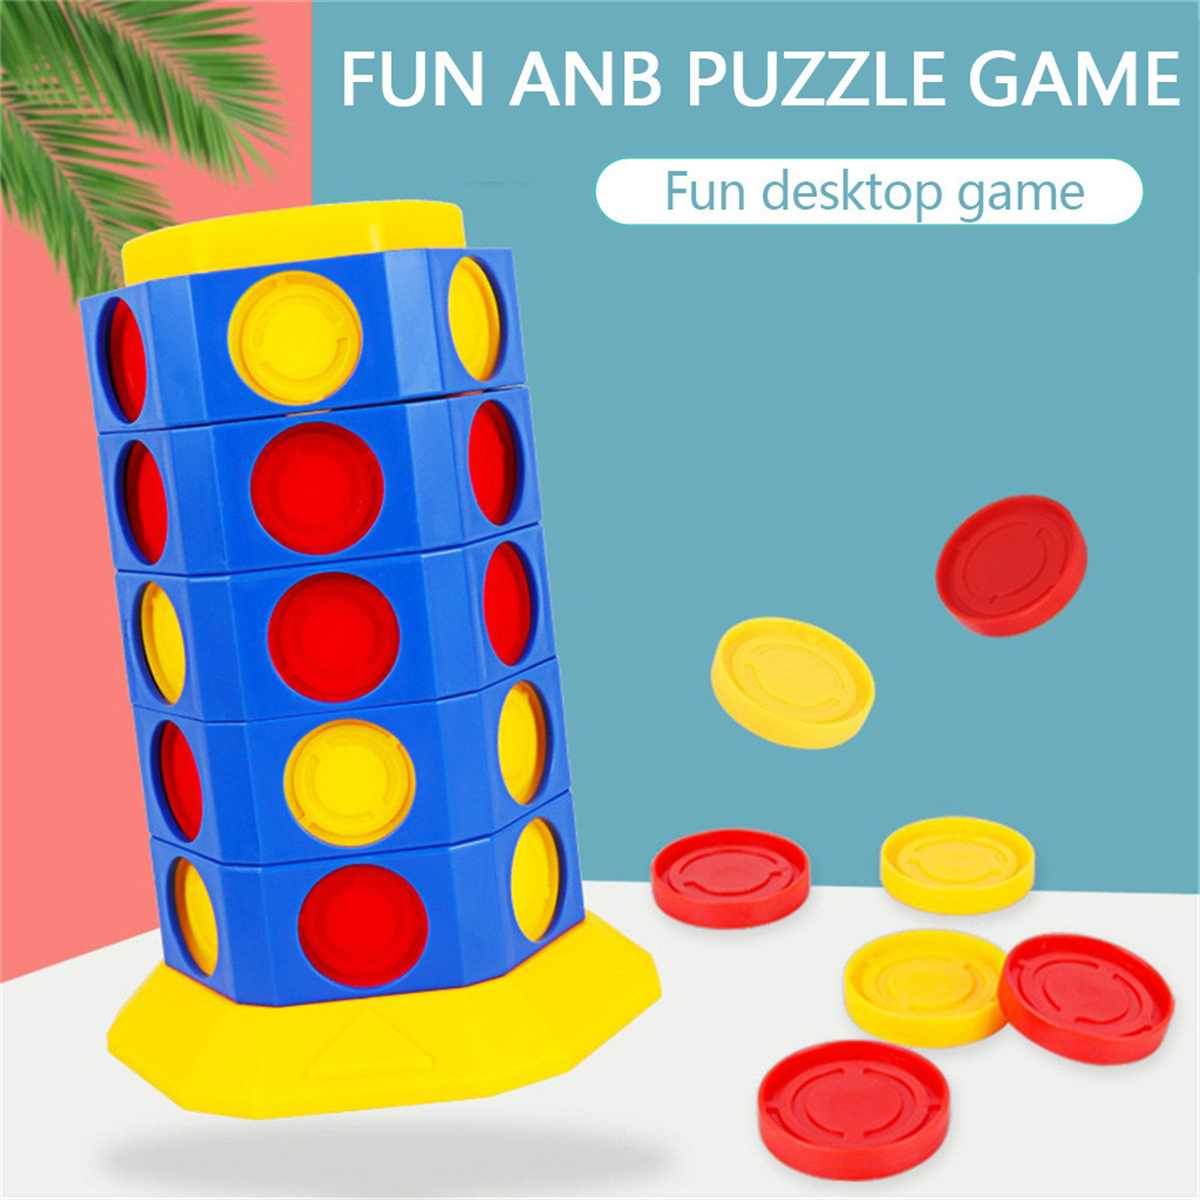 Newest Stand Connect 4 Game Classic Masters Funny Kids Children Twist And Turn Line Up Row Board Puzzle Toys Gifts Board Game